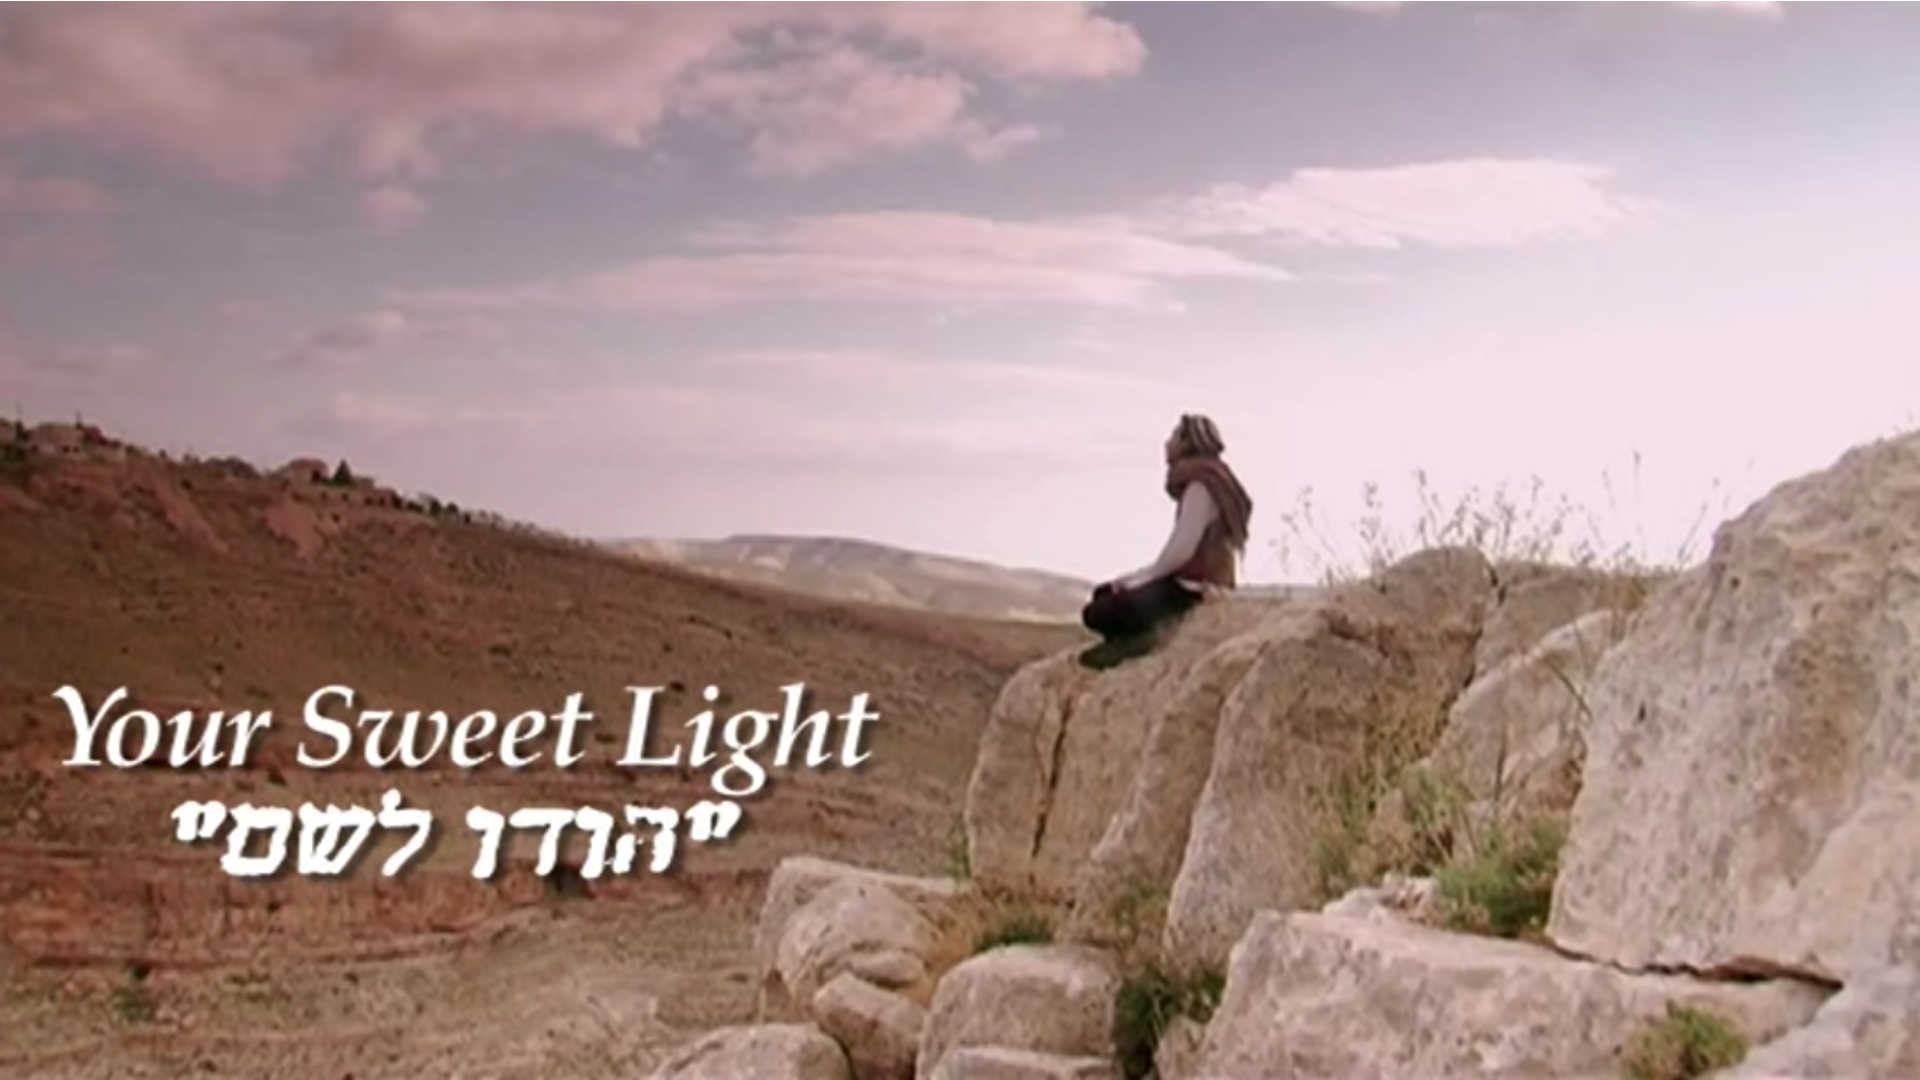 Watch Full Movie - Your Sweet Light